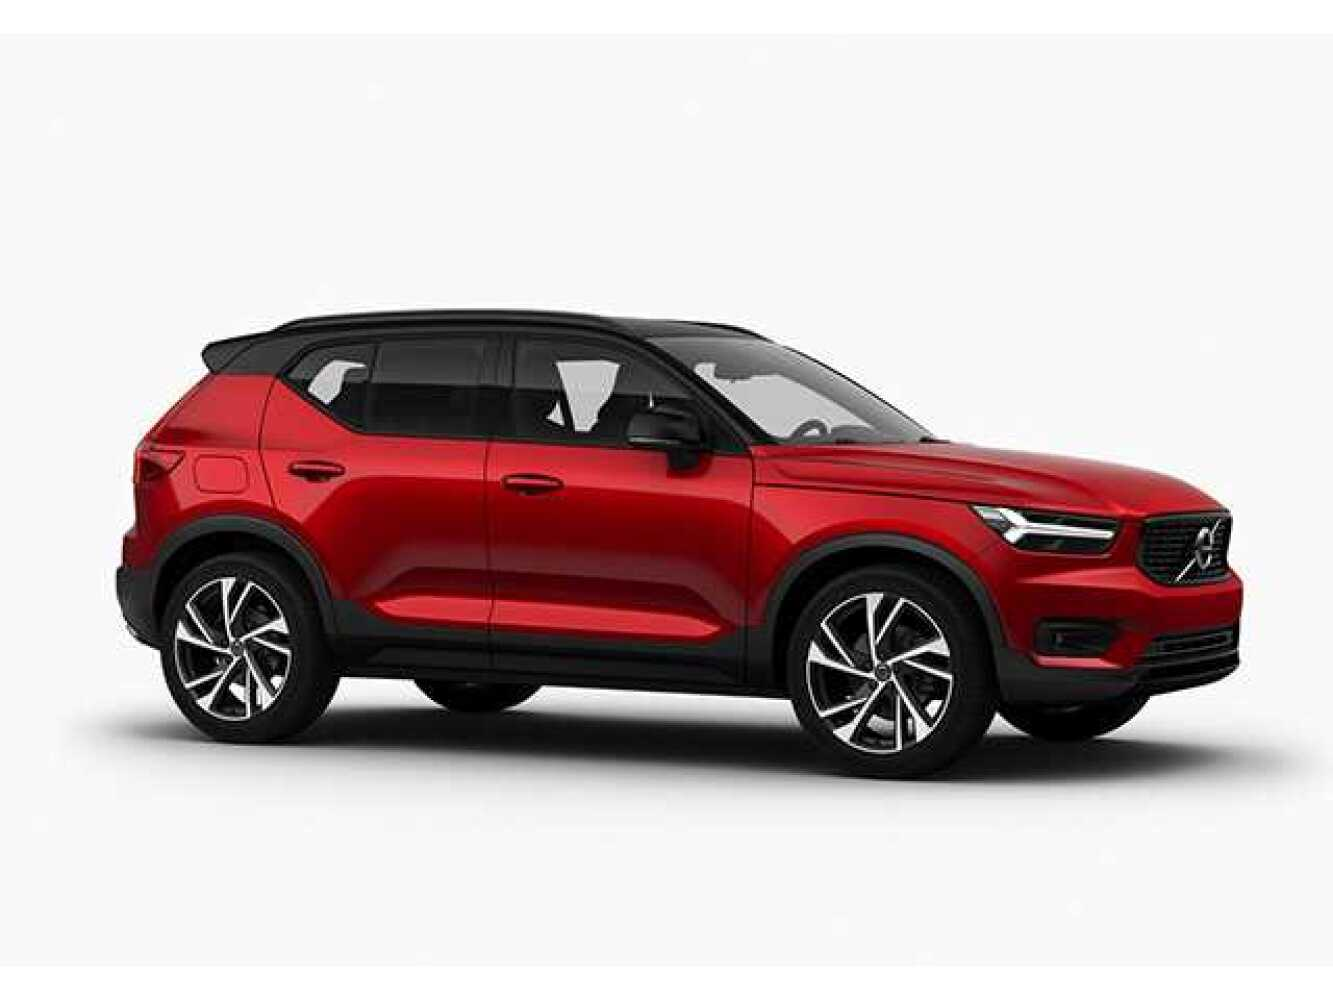 New Volvo Xc40 2.0 D3 R DESIGN Pro 5dr AWD Geartronic ...